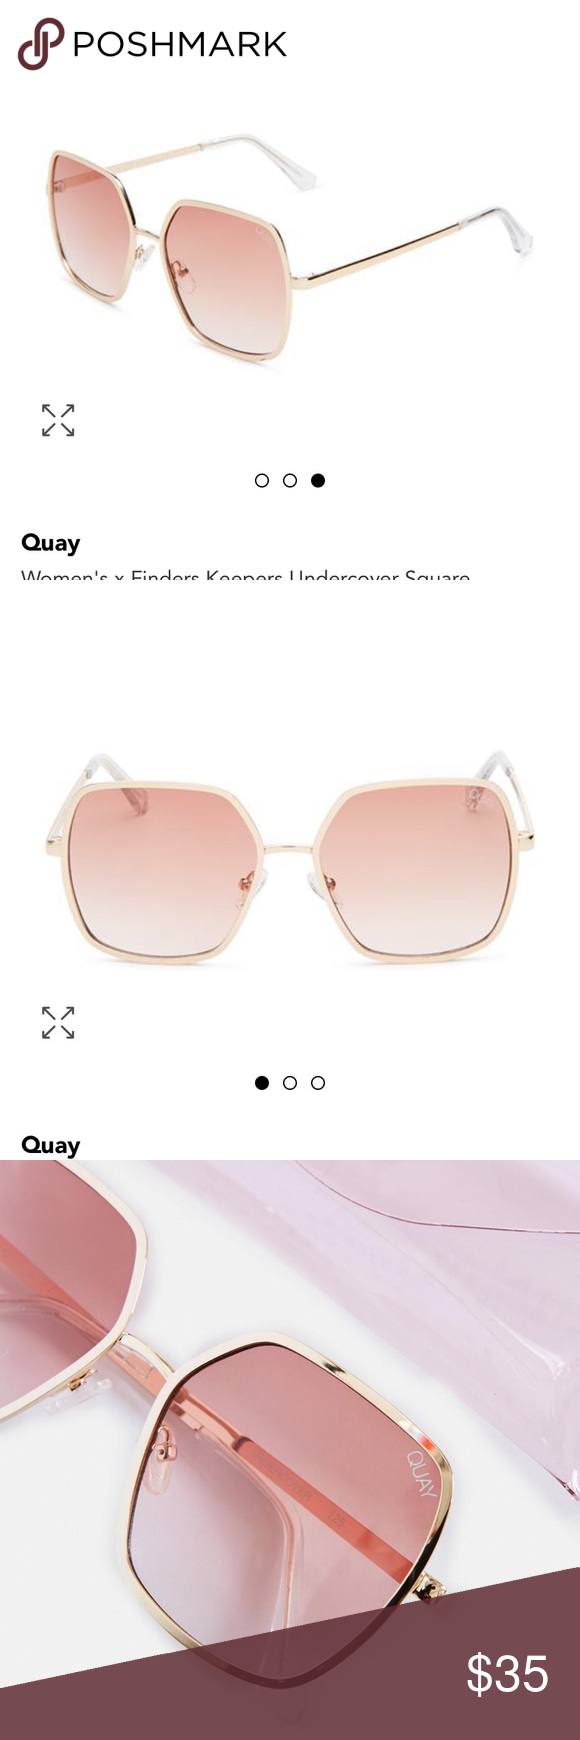 Quay Finders Keepers Undercover Square Sunglasses Brand New Keep It Undercover Go Incognito In Square Sunglasses Sunglasses Accessories Sunglasses Branding